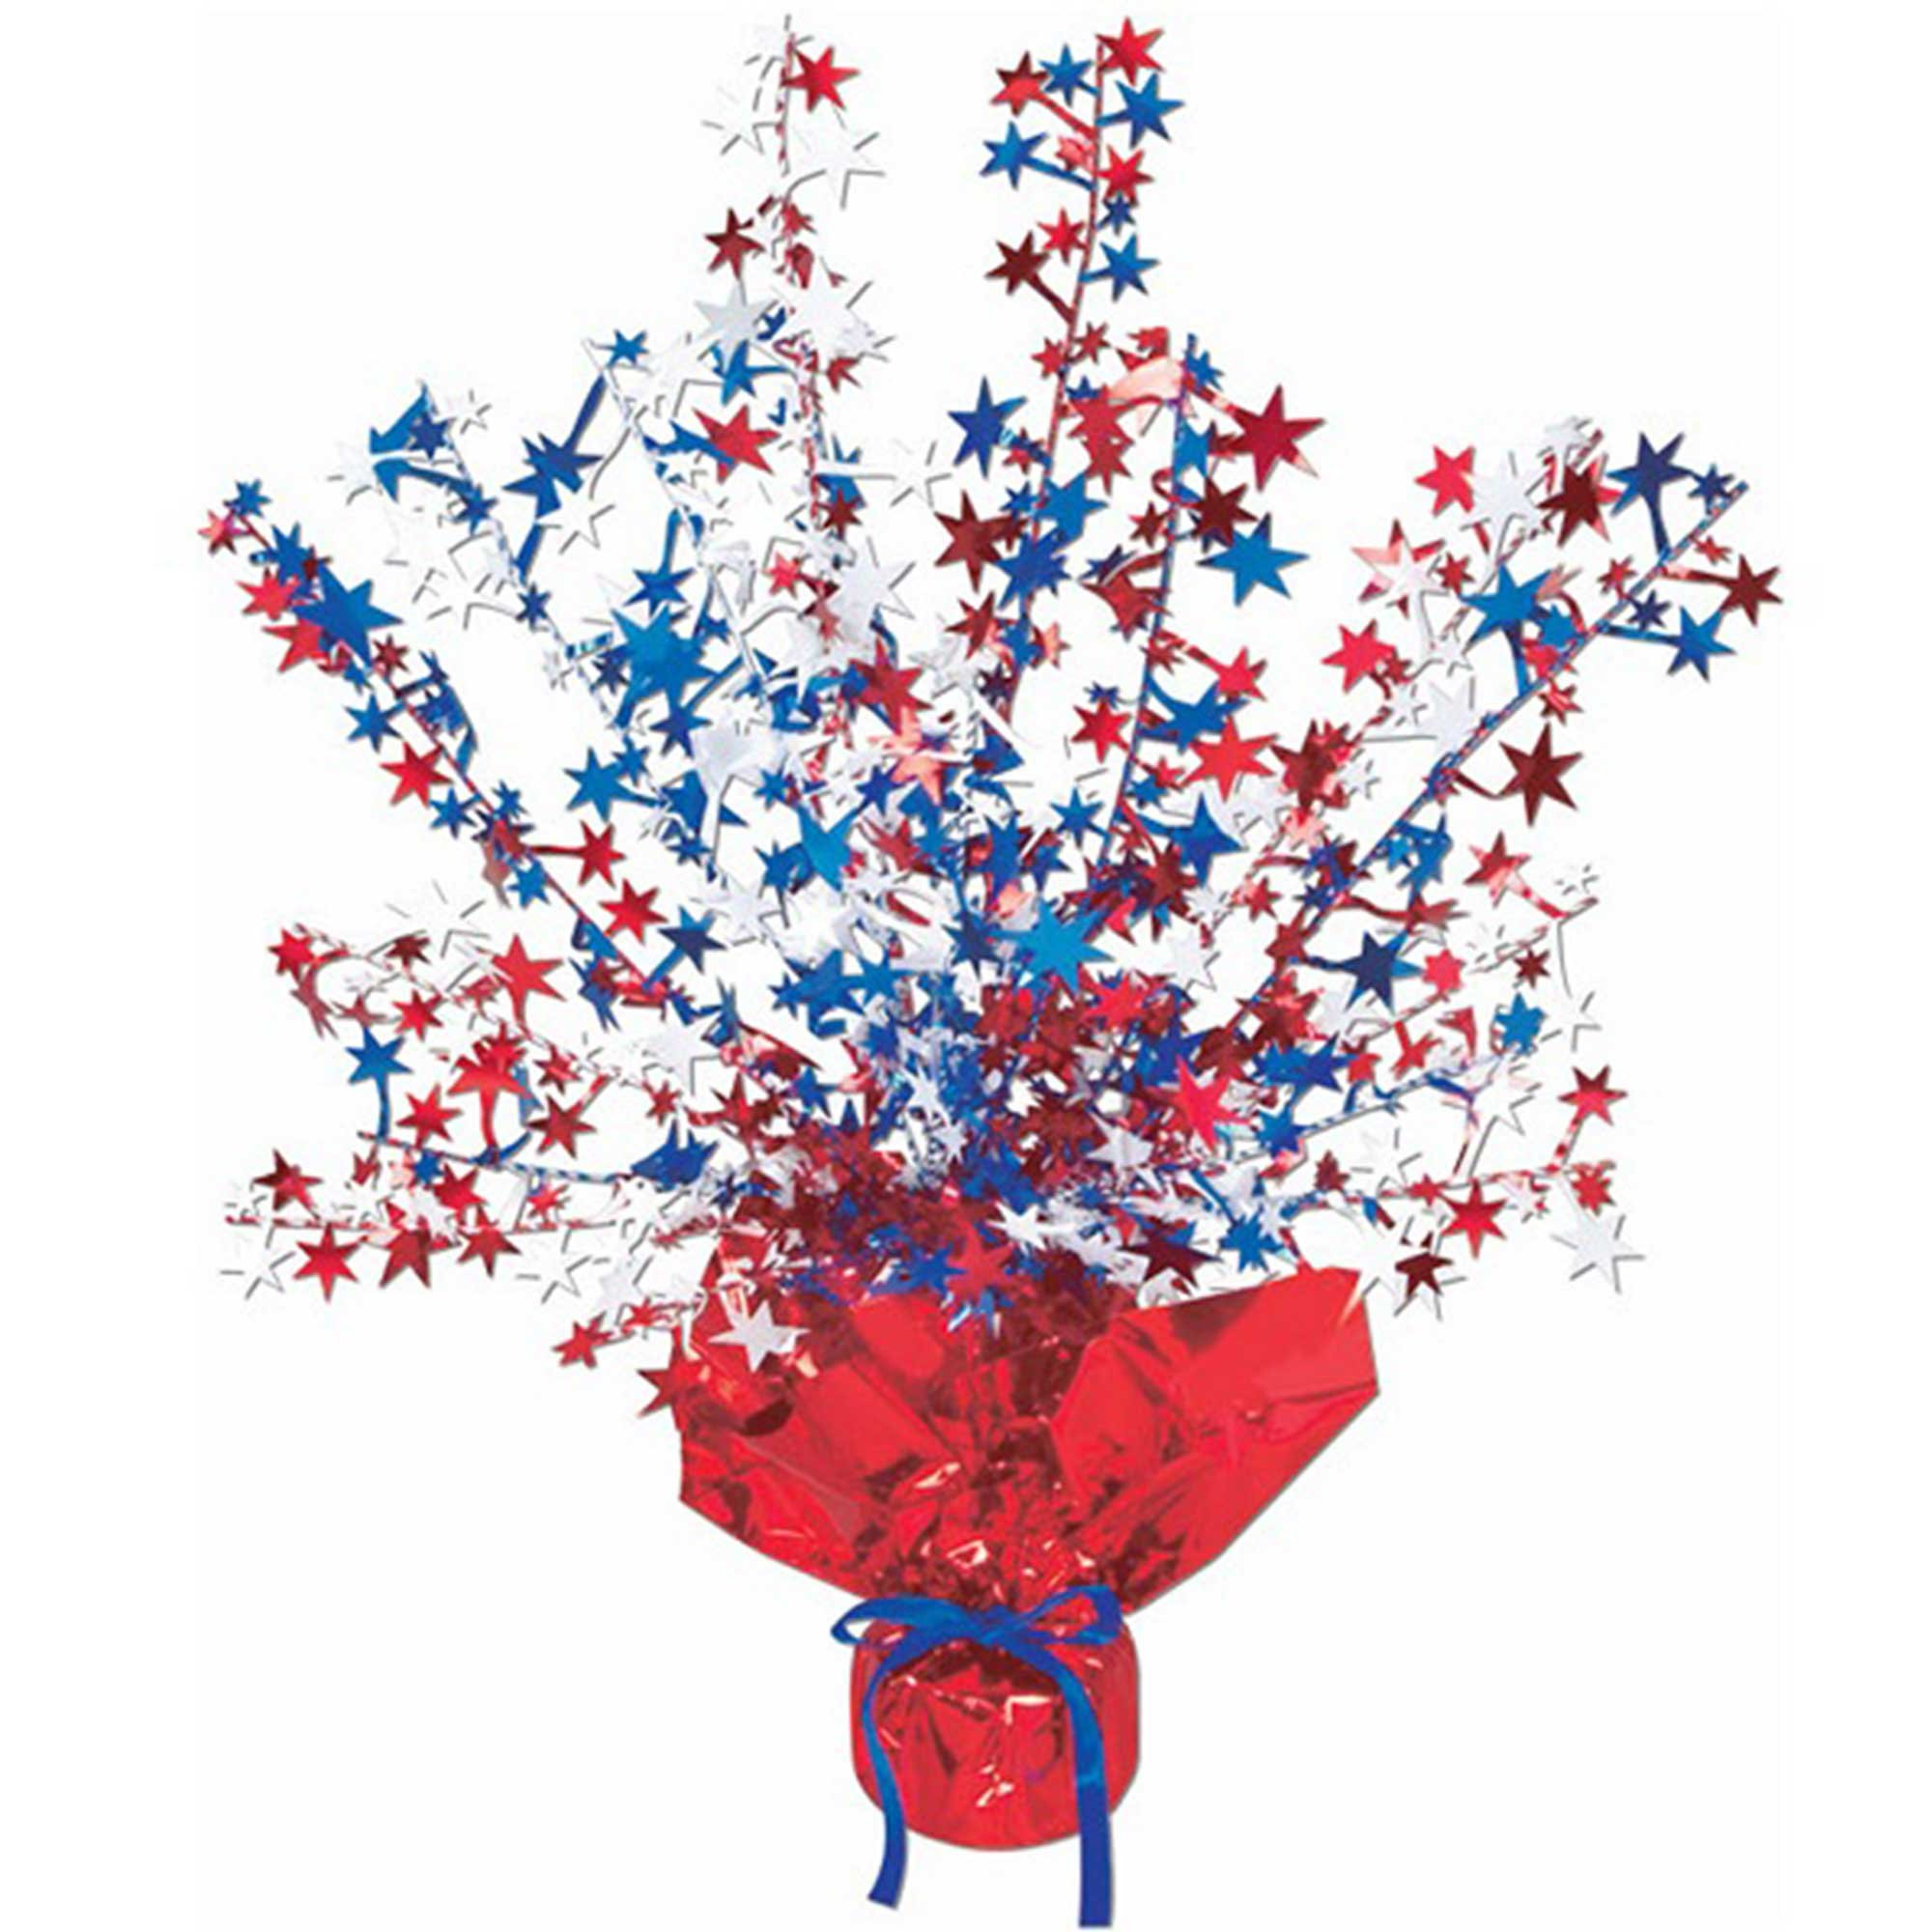 Star Gleam 'N Burst Centrepiece Red, White & Blue